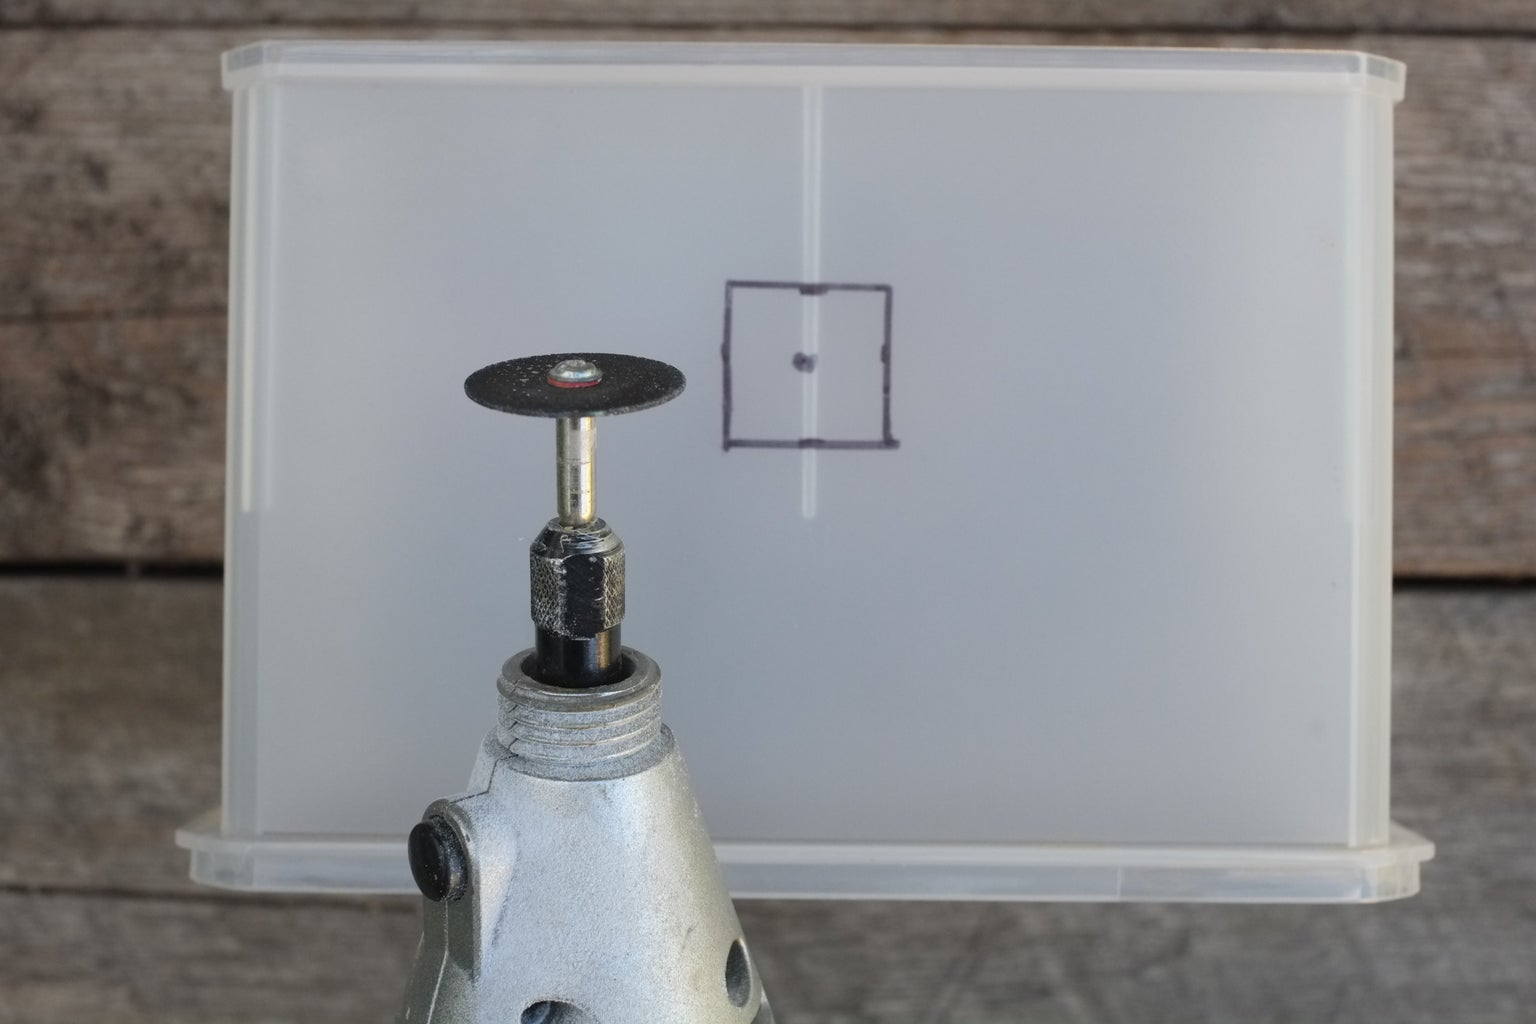 Preparing the Junction Box: Setting Up for the Brackets